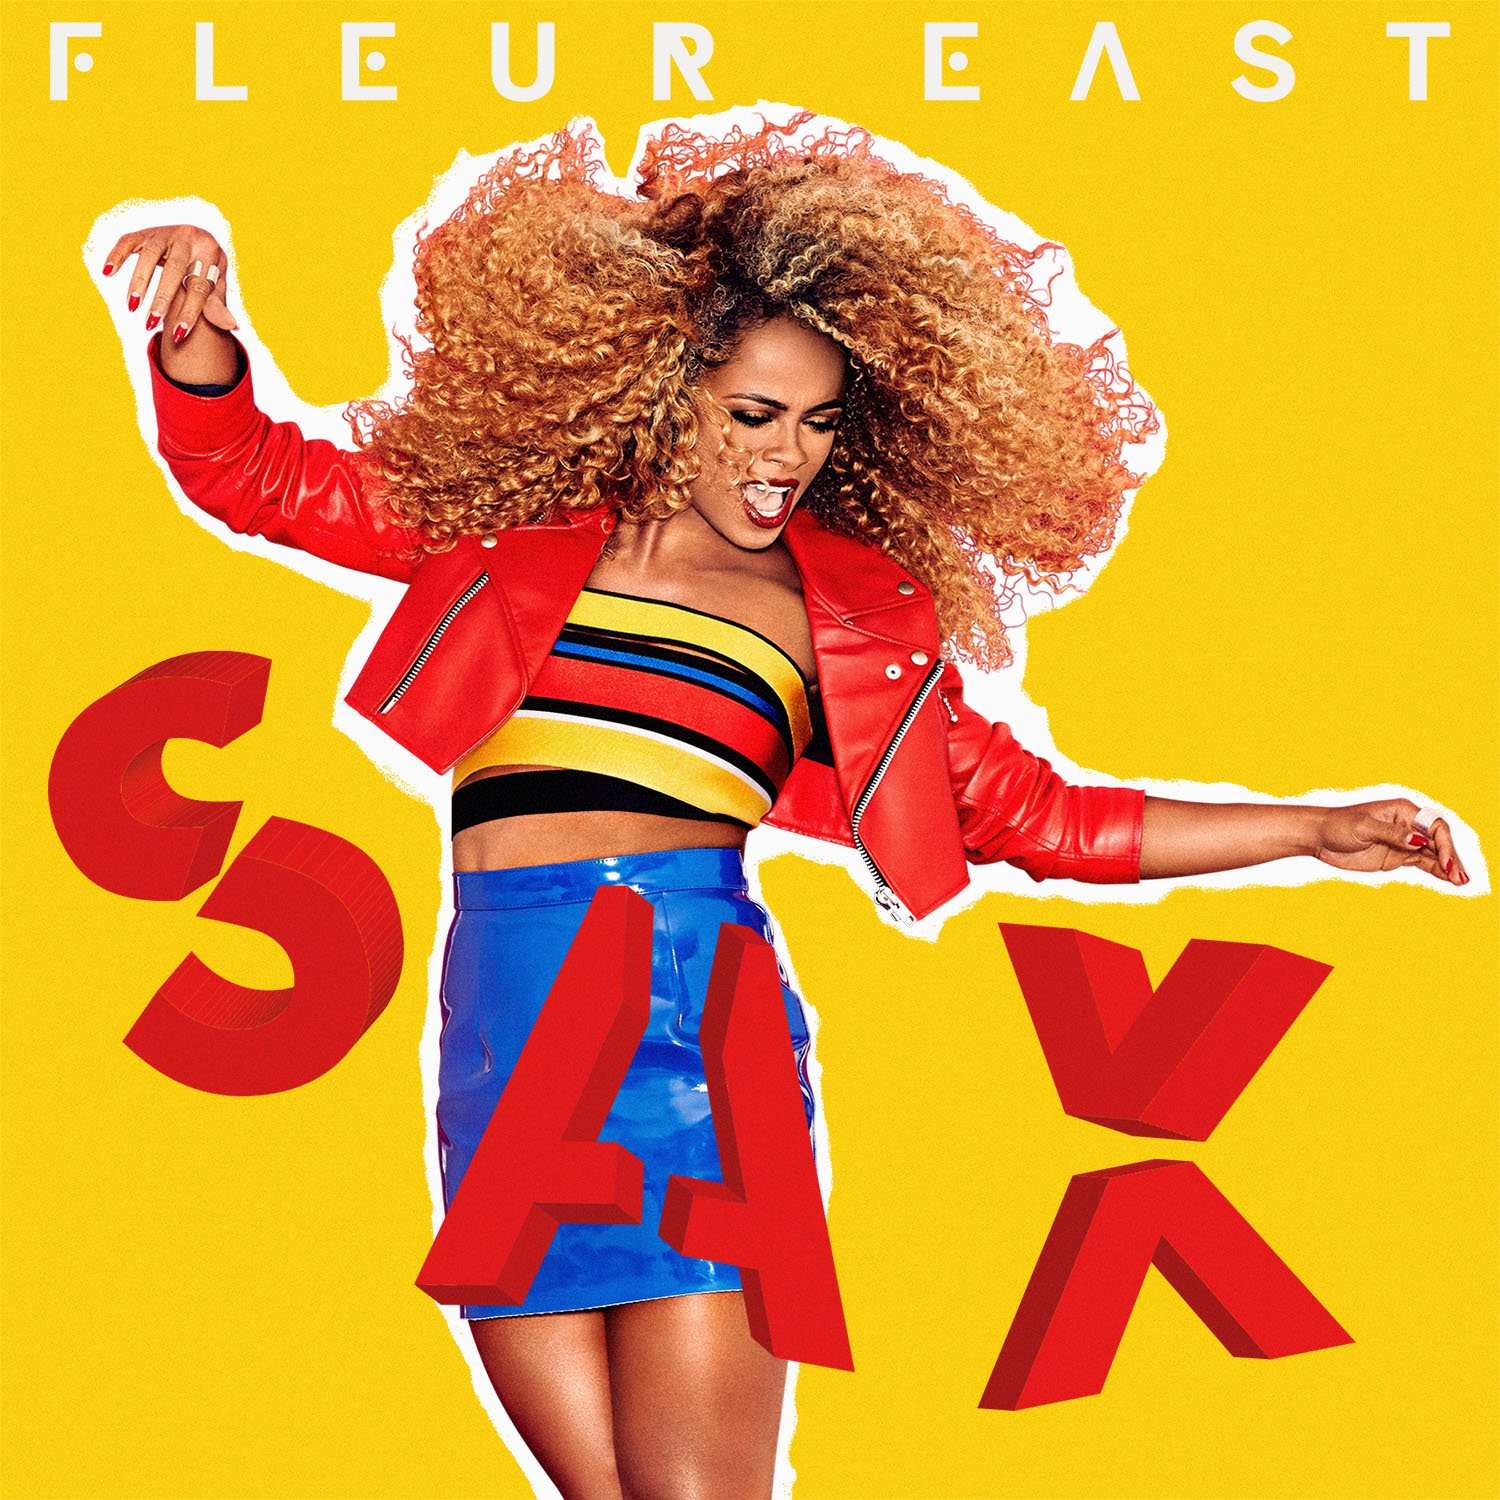 """RT @FleurEast: I CAN'T WAIT to perform """"Sax"""" live on the @latelateshow with @JkCorden on May 25. Tune in at 12:37 ET / 11:37c!! 🎷🇺🇸 https:/…"""